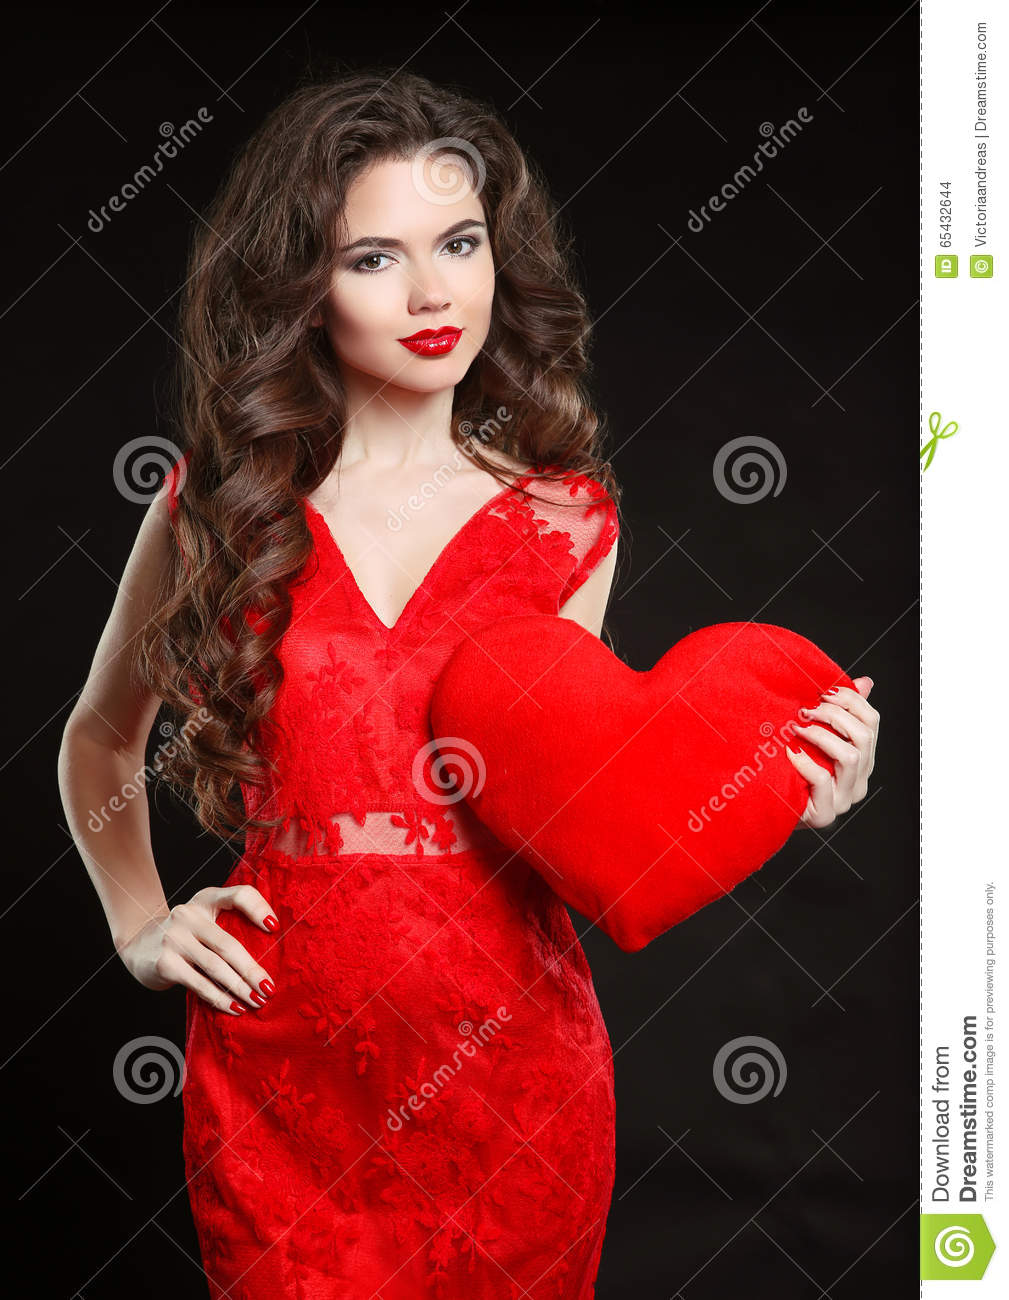 Beuatiful girl with valentine heart wearing in red dress